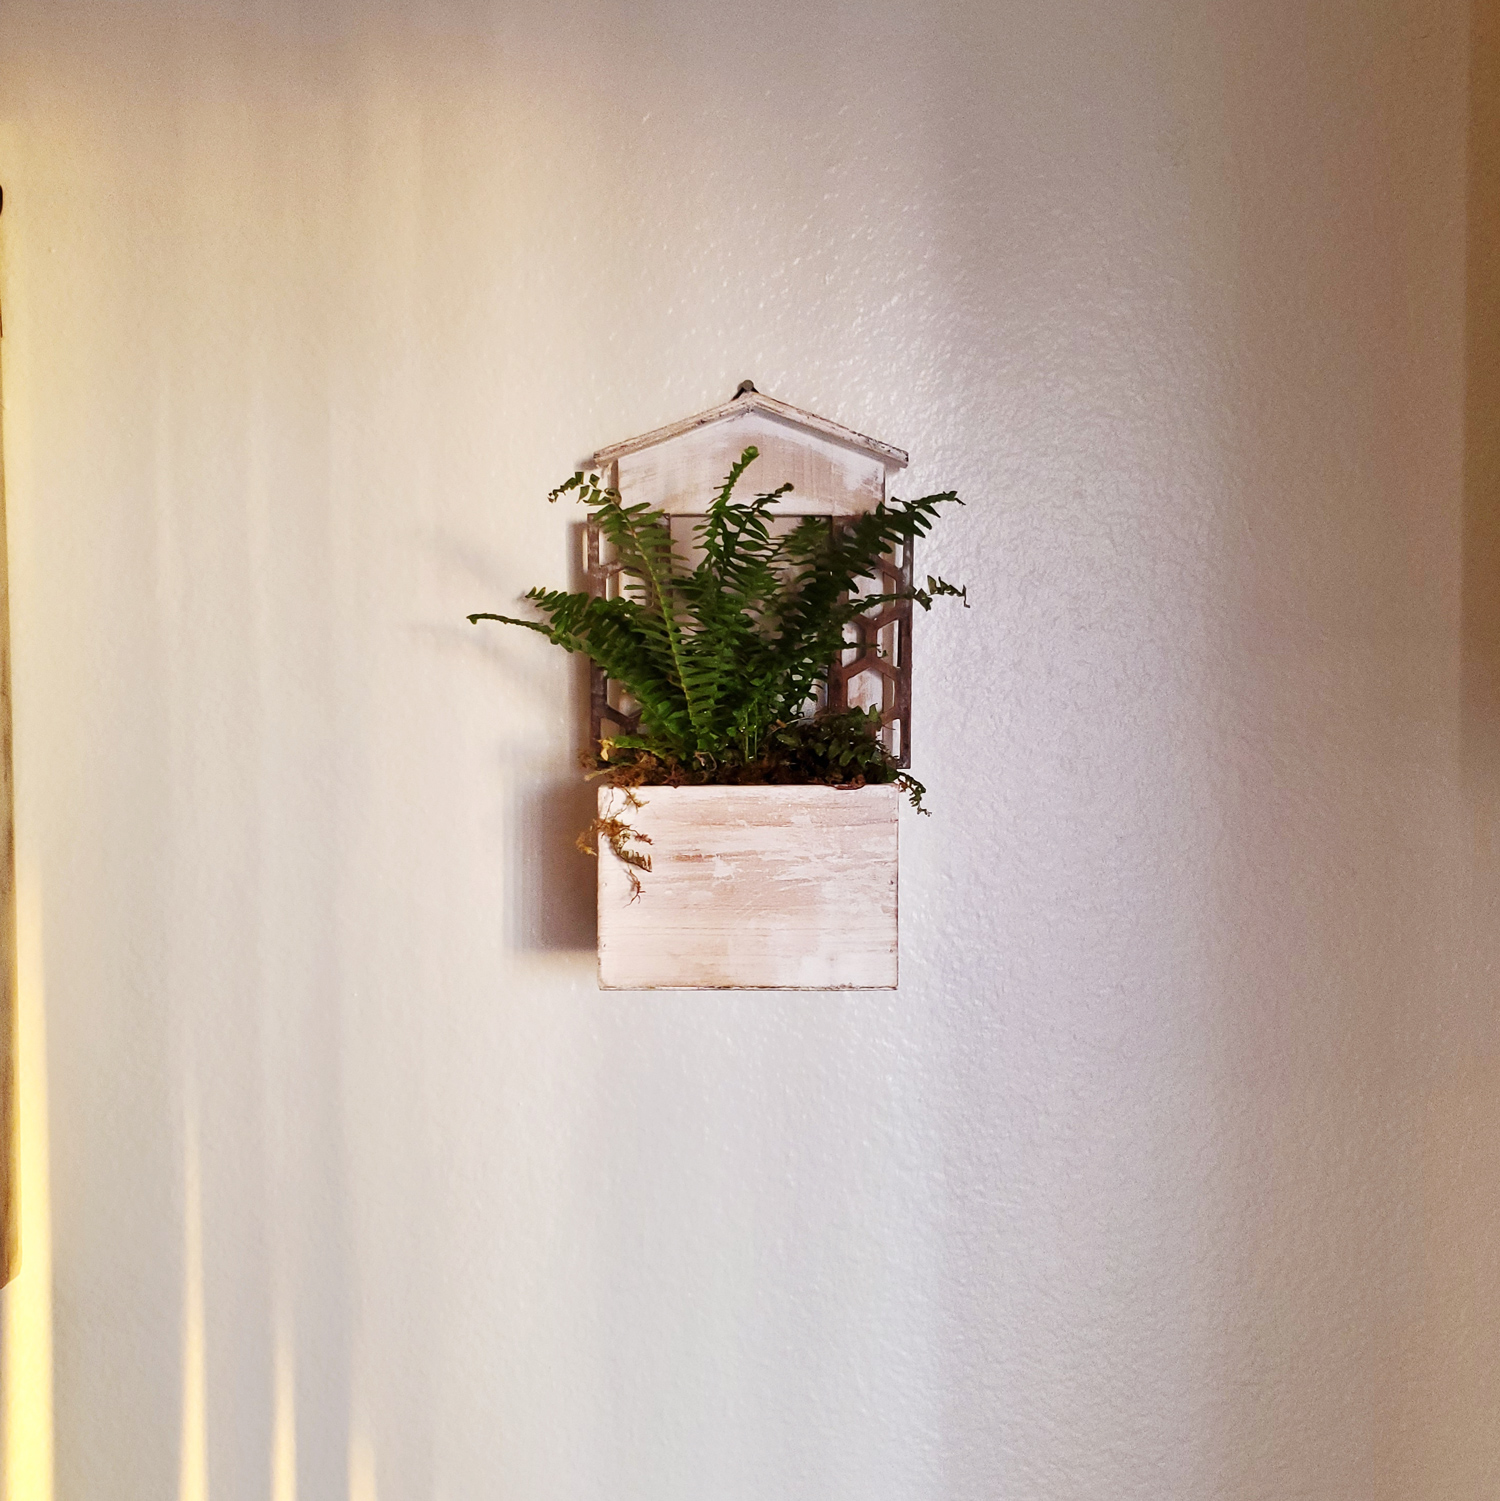 A Boston Fern sitting in a wooden planter hanging on the wall